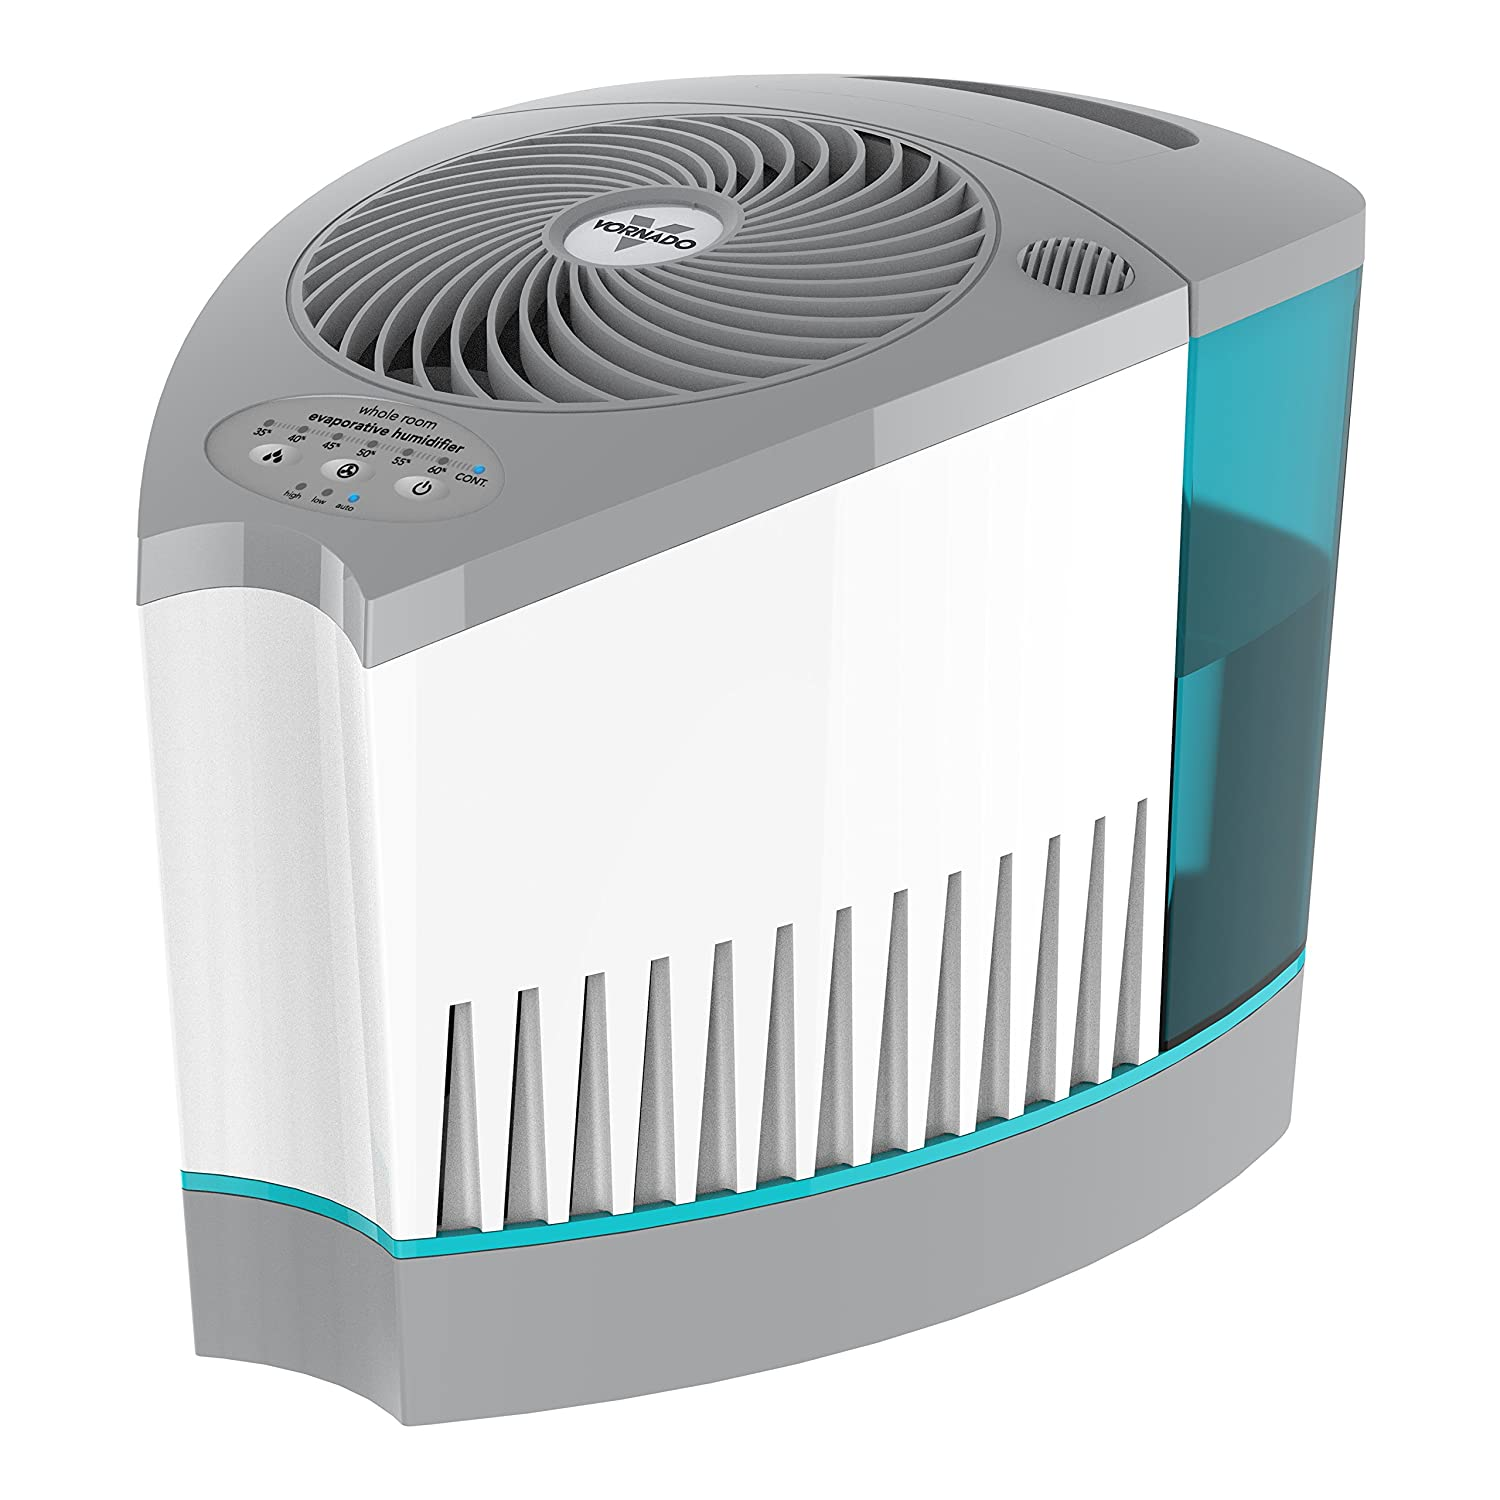 Amazon.com: Vornado Evap3 Whole Room Evaporative Humidifier, White: Home &  Kitchen